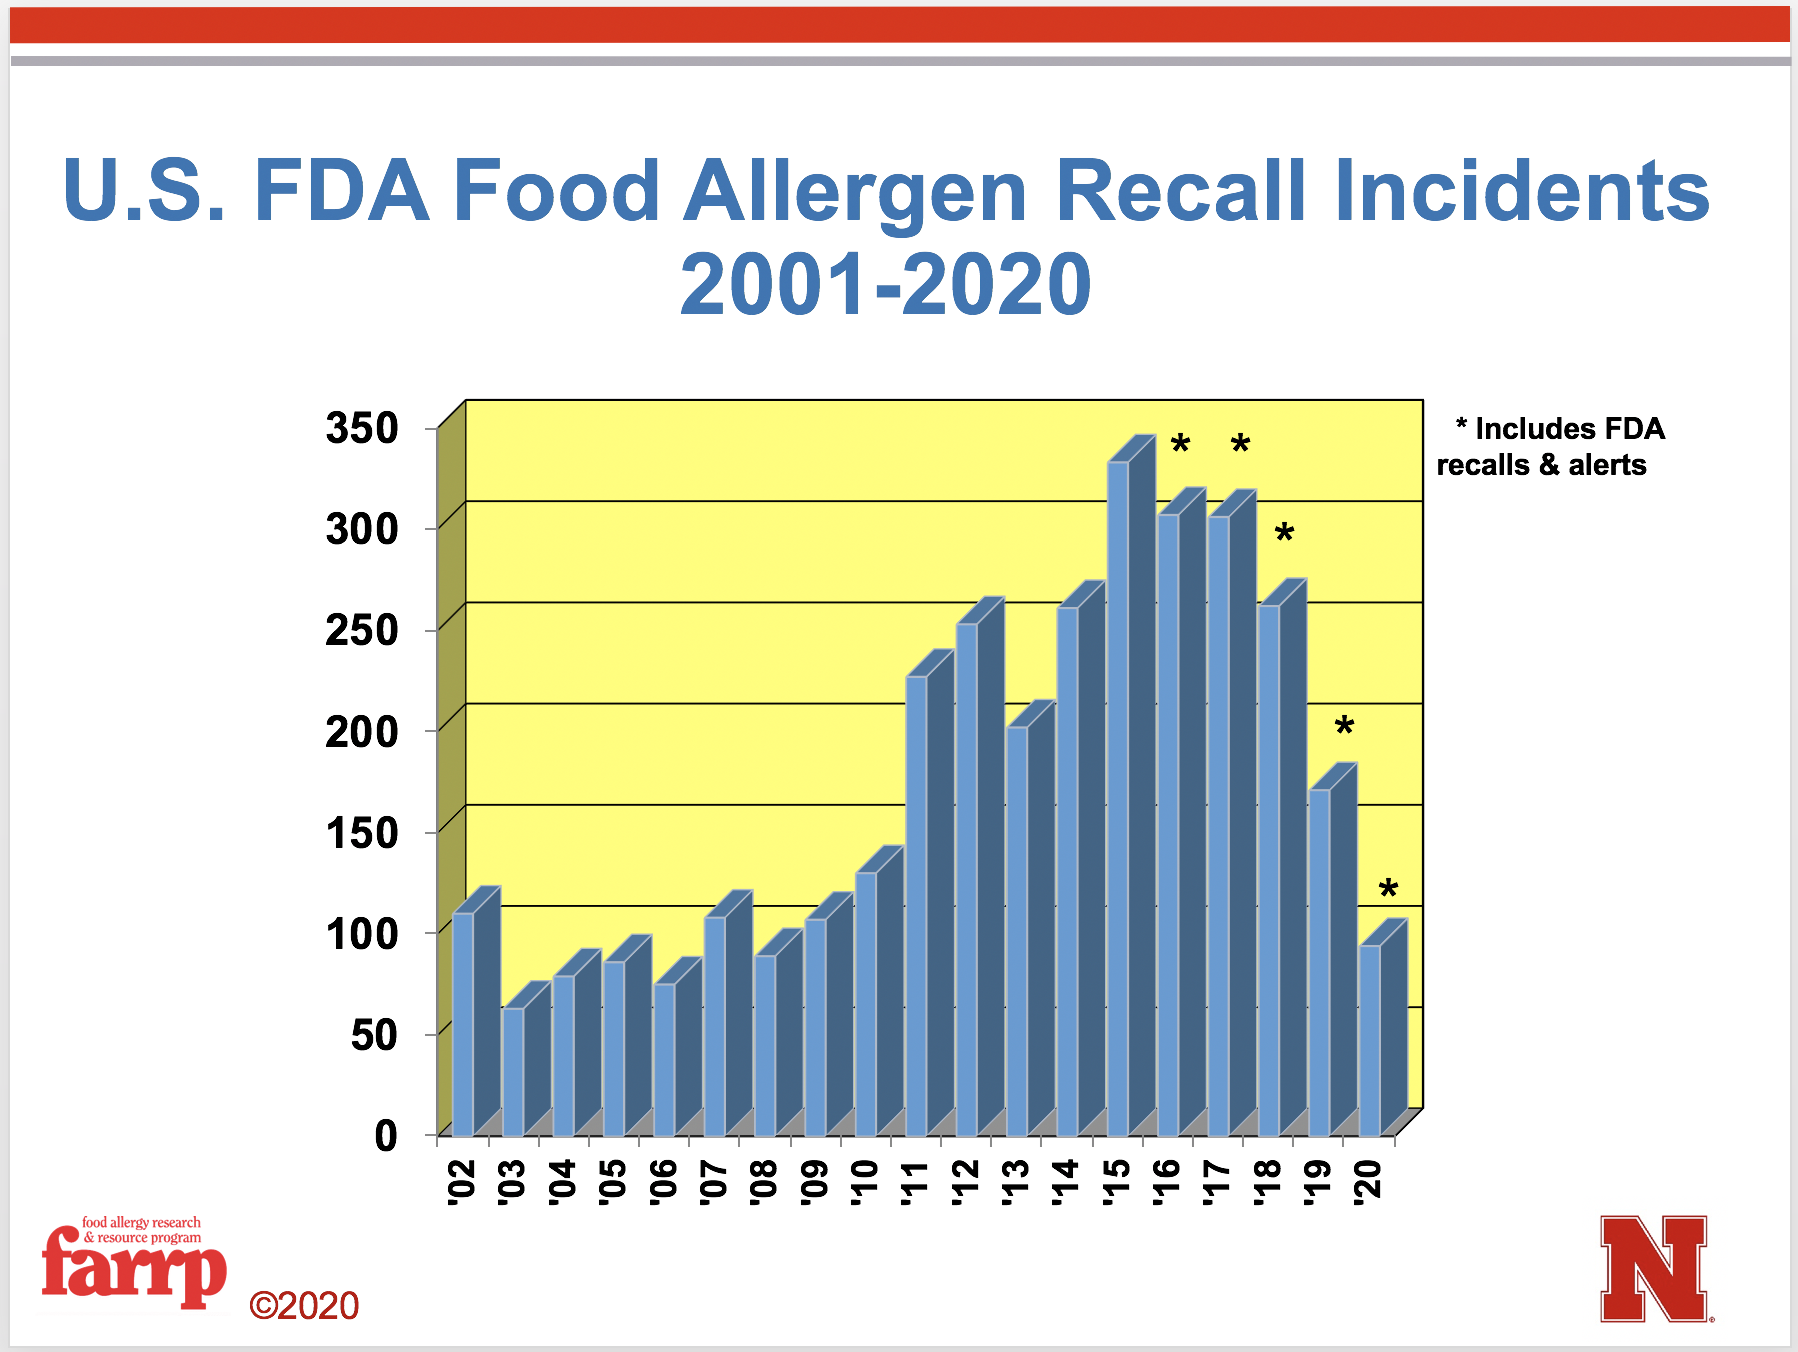 FDA Food Allergen Recall Incidents